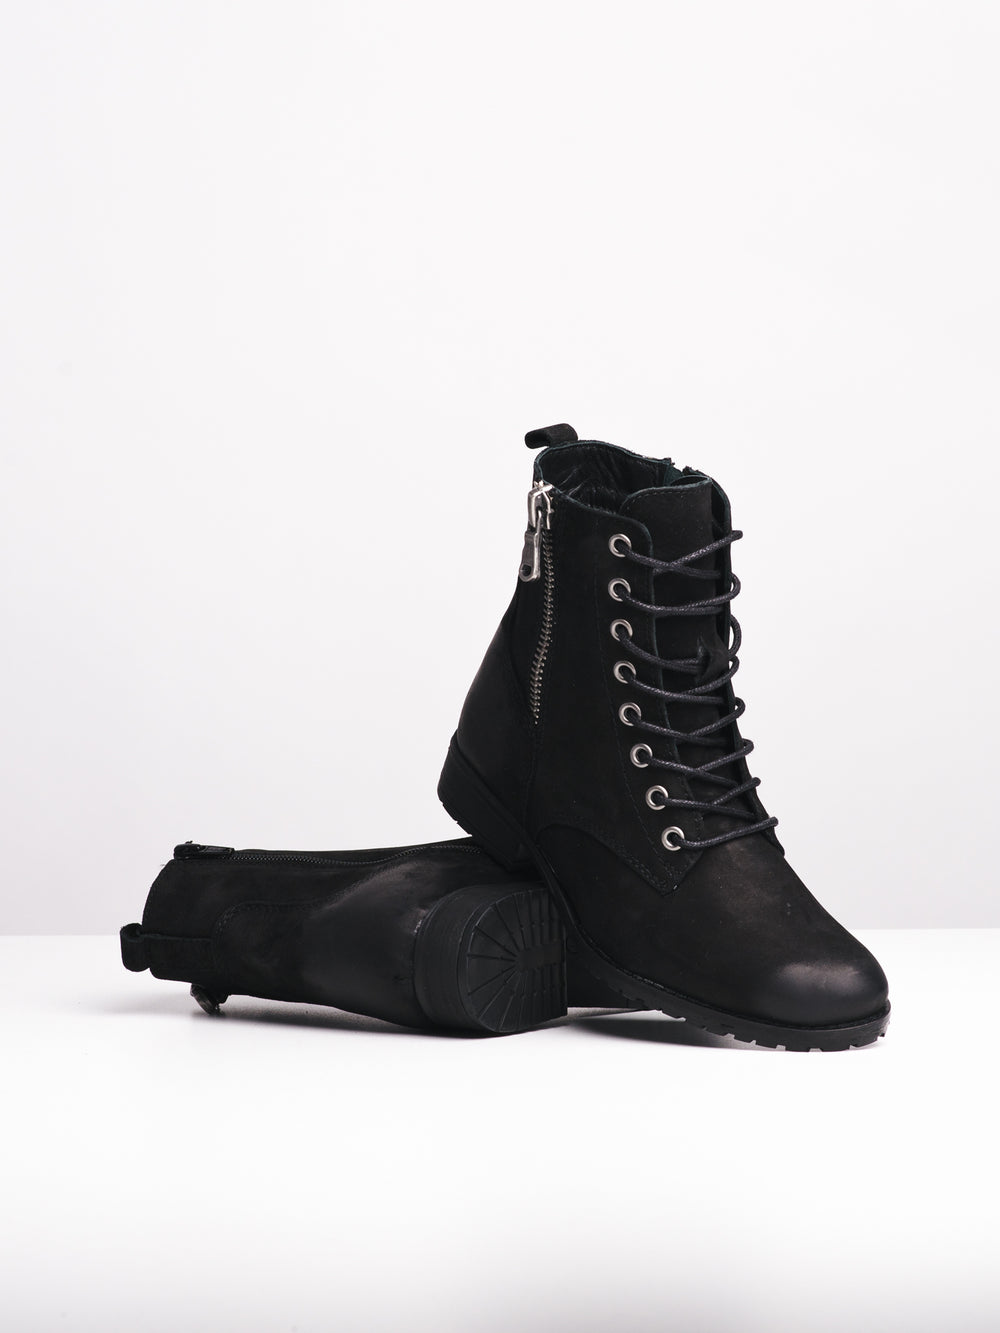 WOMENS KRISTIN - BLACK - CLEARANCE